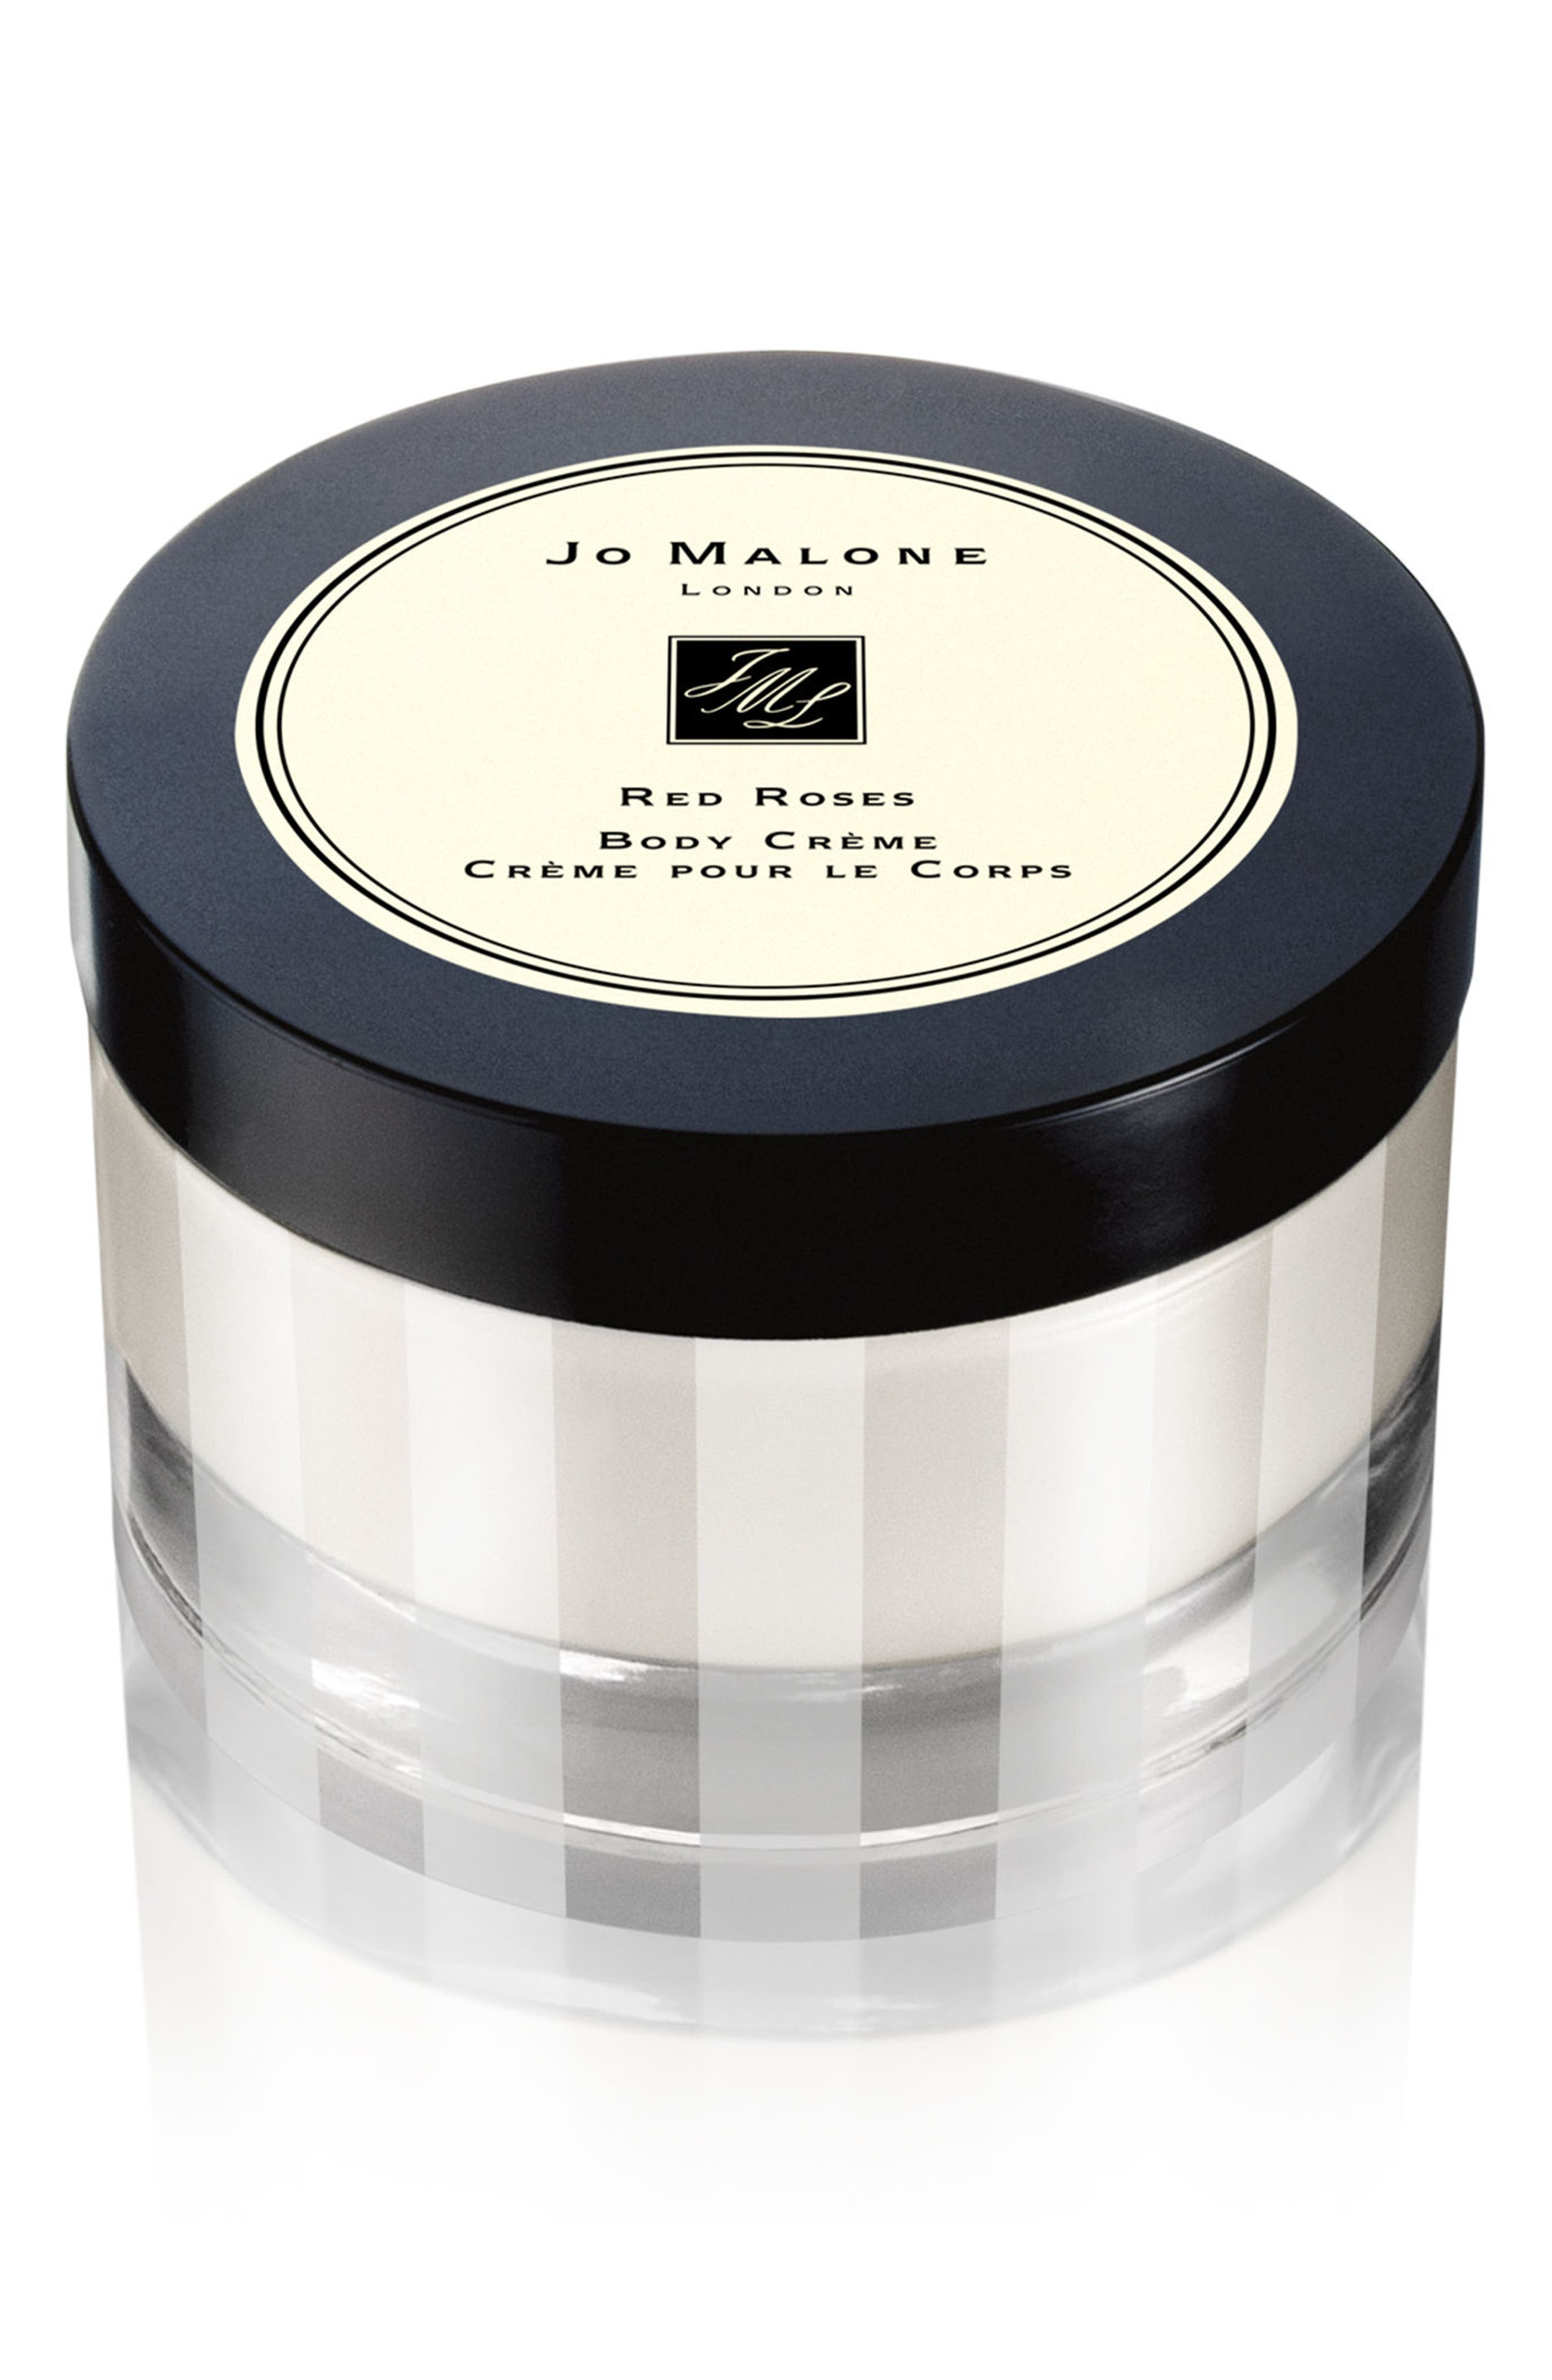 Main Image - Jo Malone London™ Red Roses Body Crème